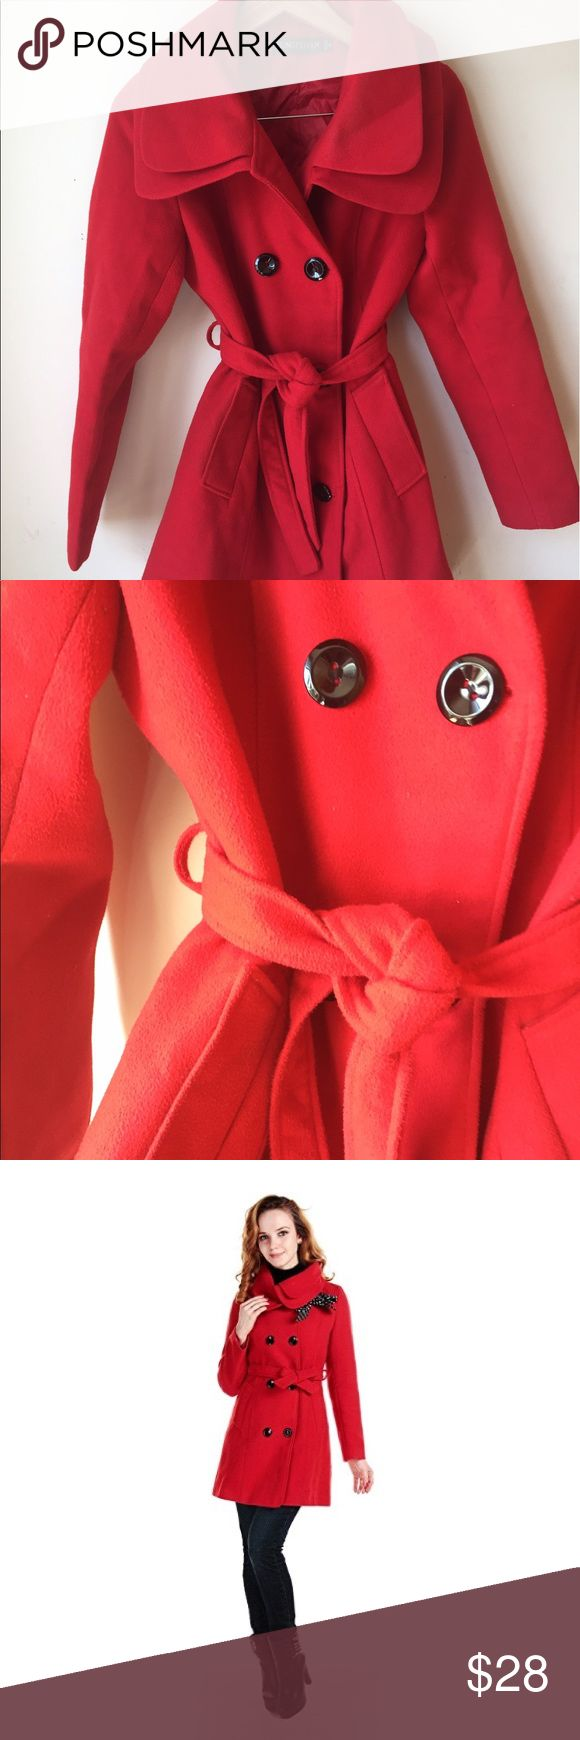 Red Winter Pea Coat Vibrant, brilliantly red pea coat perfect for the wintertime. Looks beautiful in contrast to the snow!  It runs a bit small so anyone from XS to M should probably fit  *This item is not up for trades at this time* Jackets & Coats Pea Coats